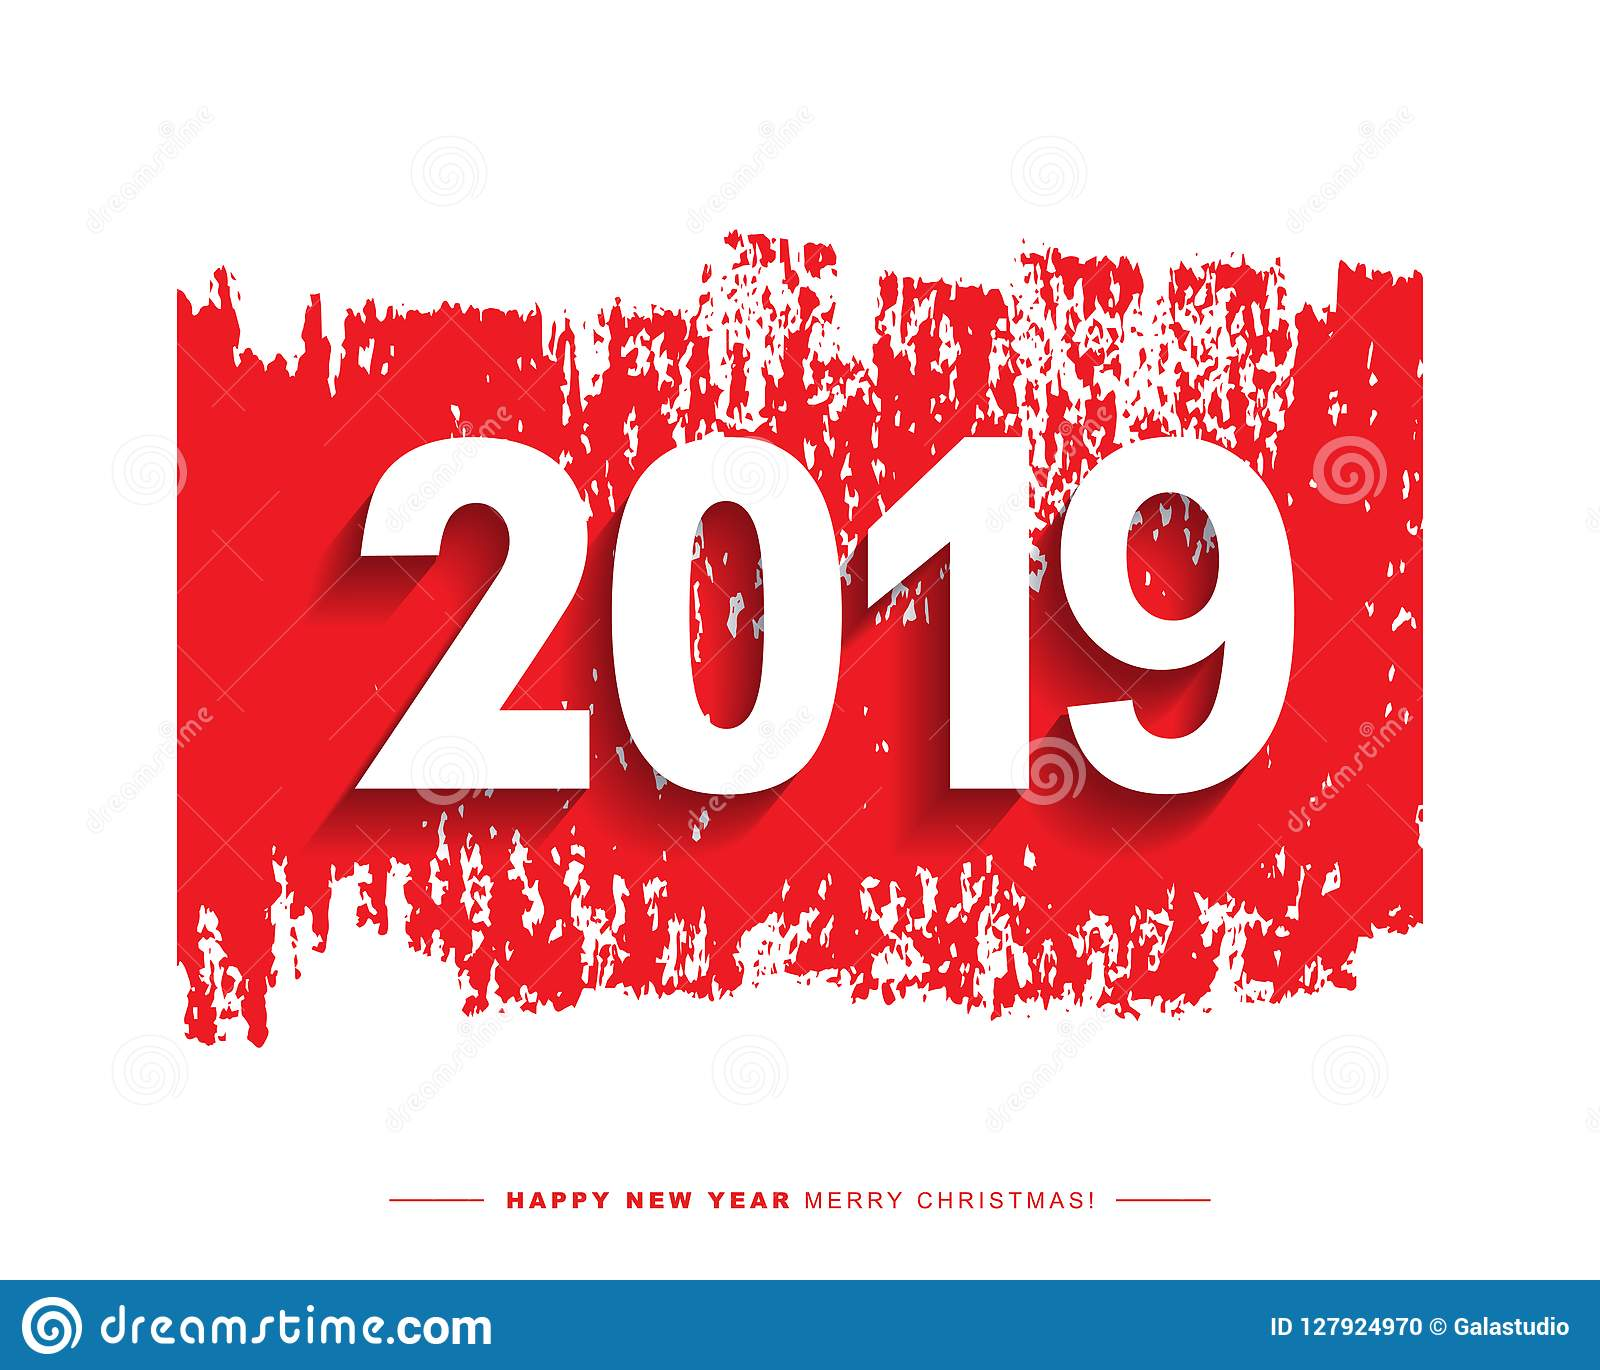 2019 merry christmas and happy new year card or background